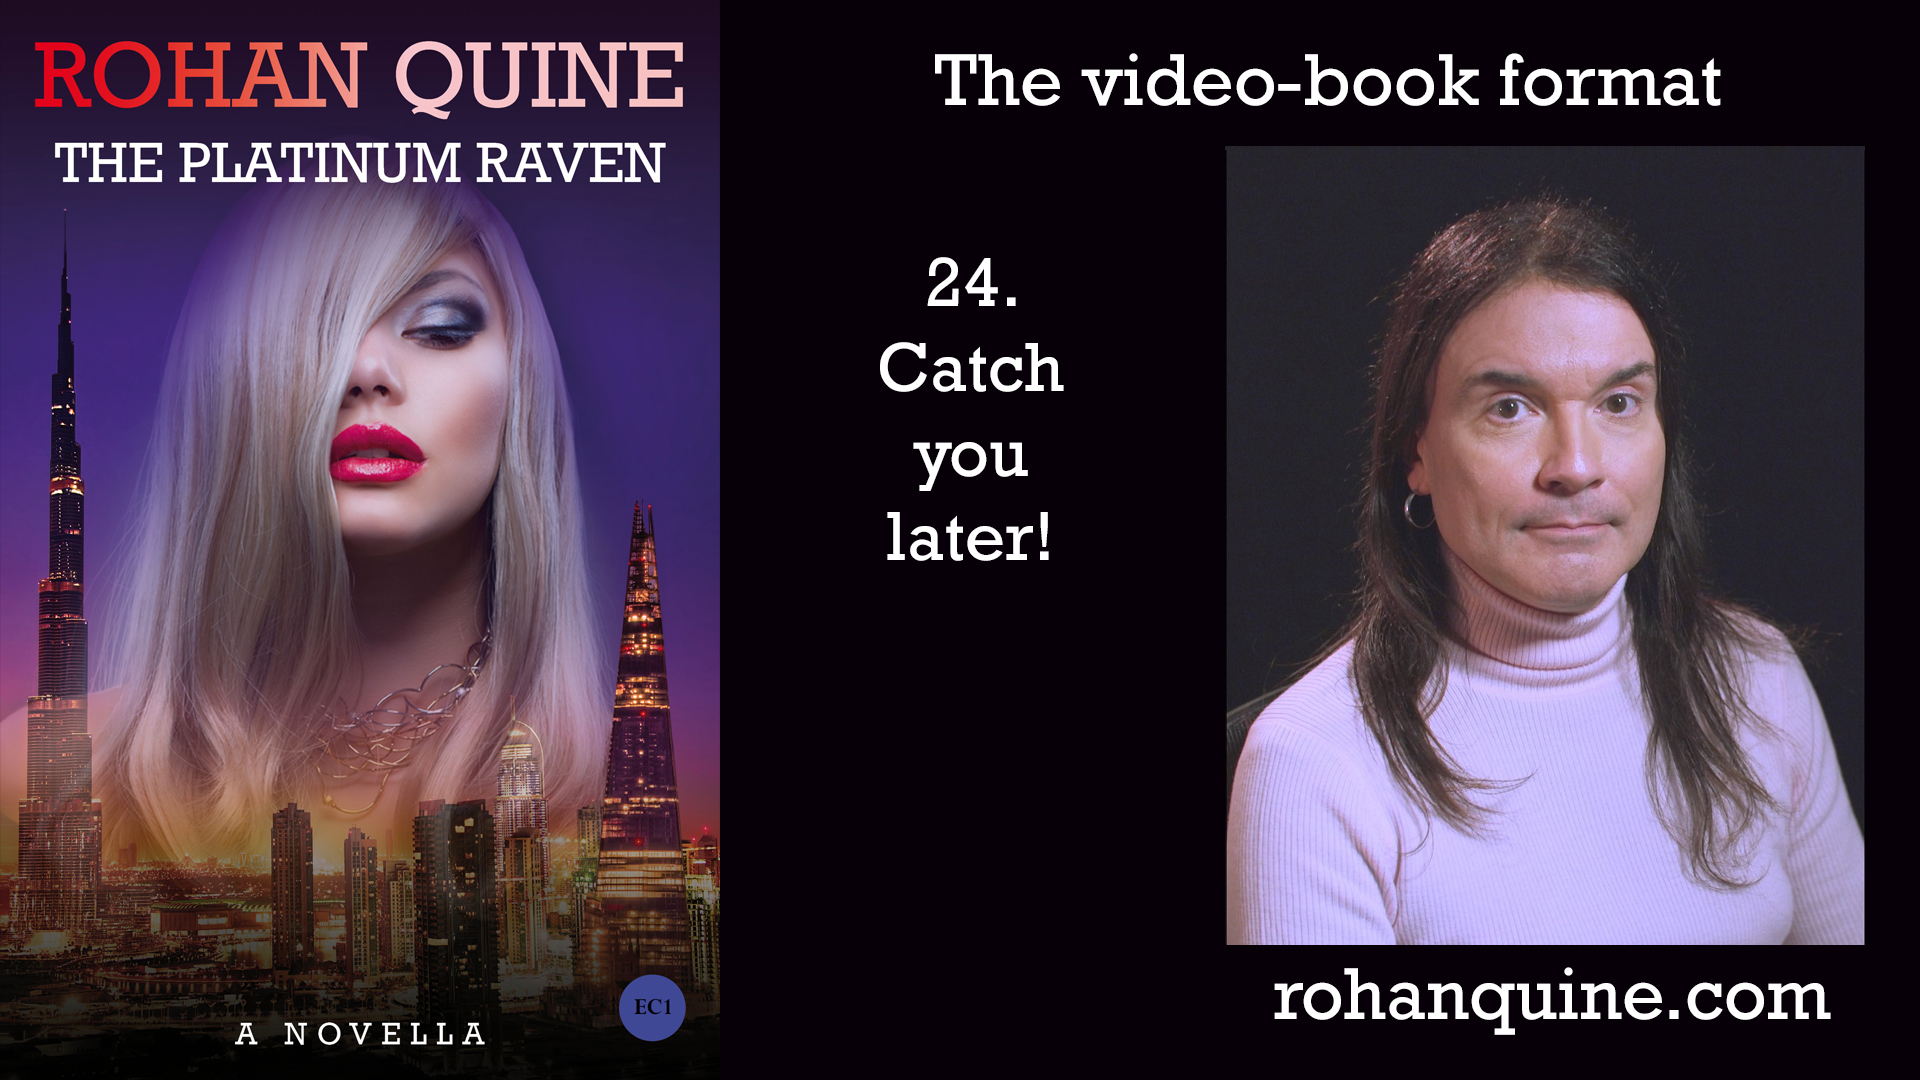 THE PLATINUM RAVEN by Rohan Quine - video-book format - chapter 24